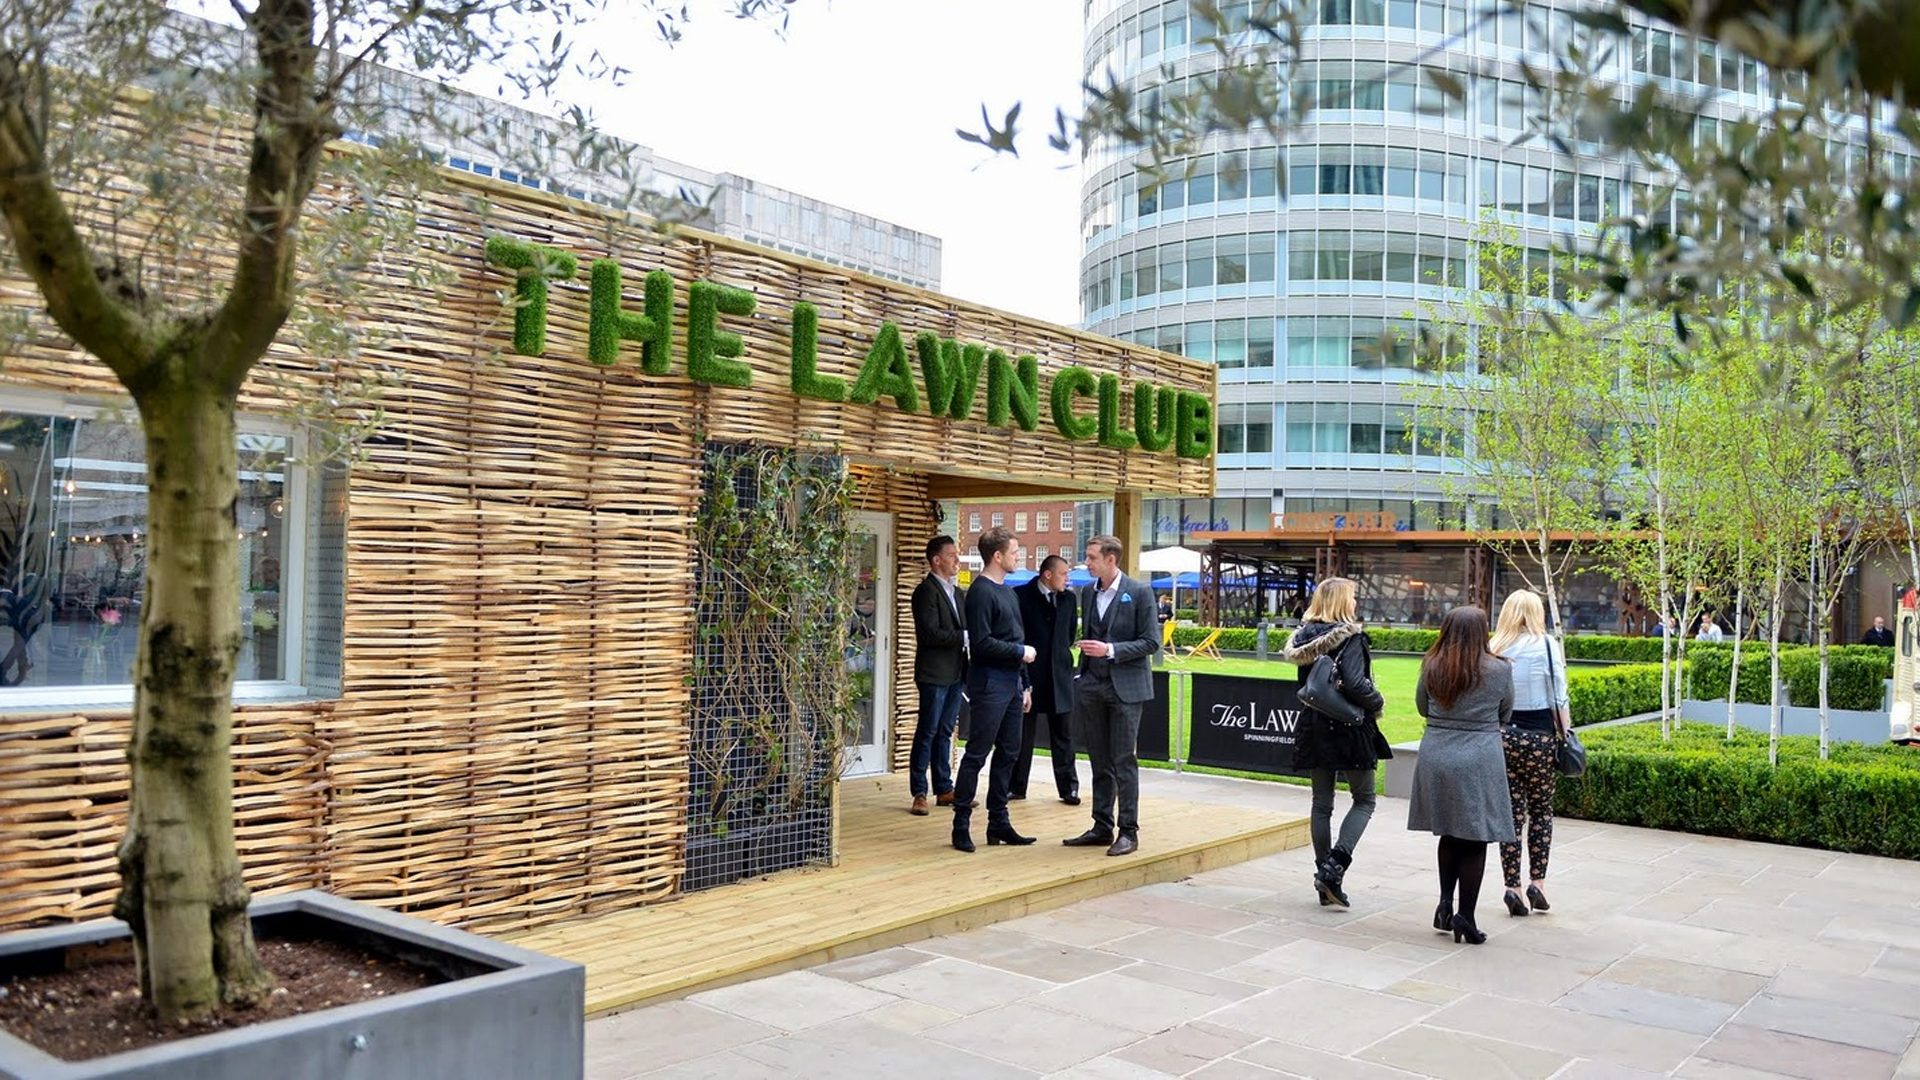 the lawn club spinningfields